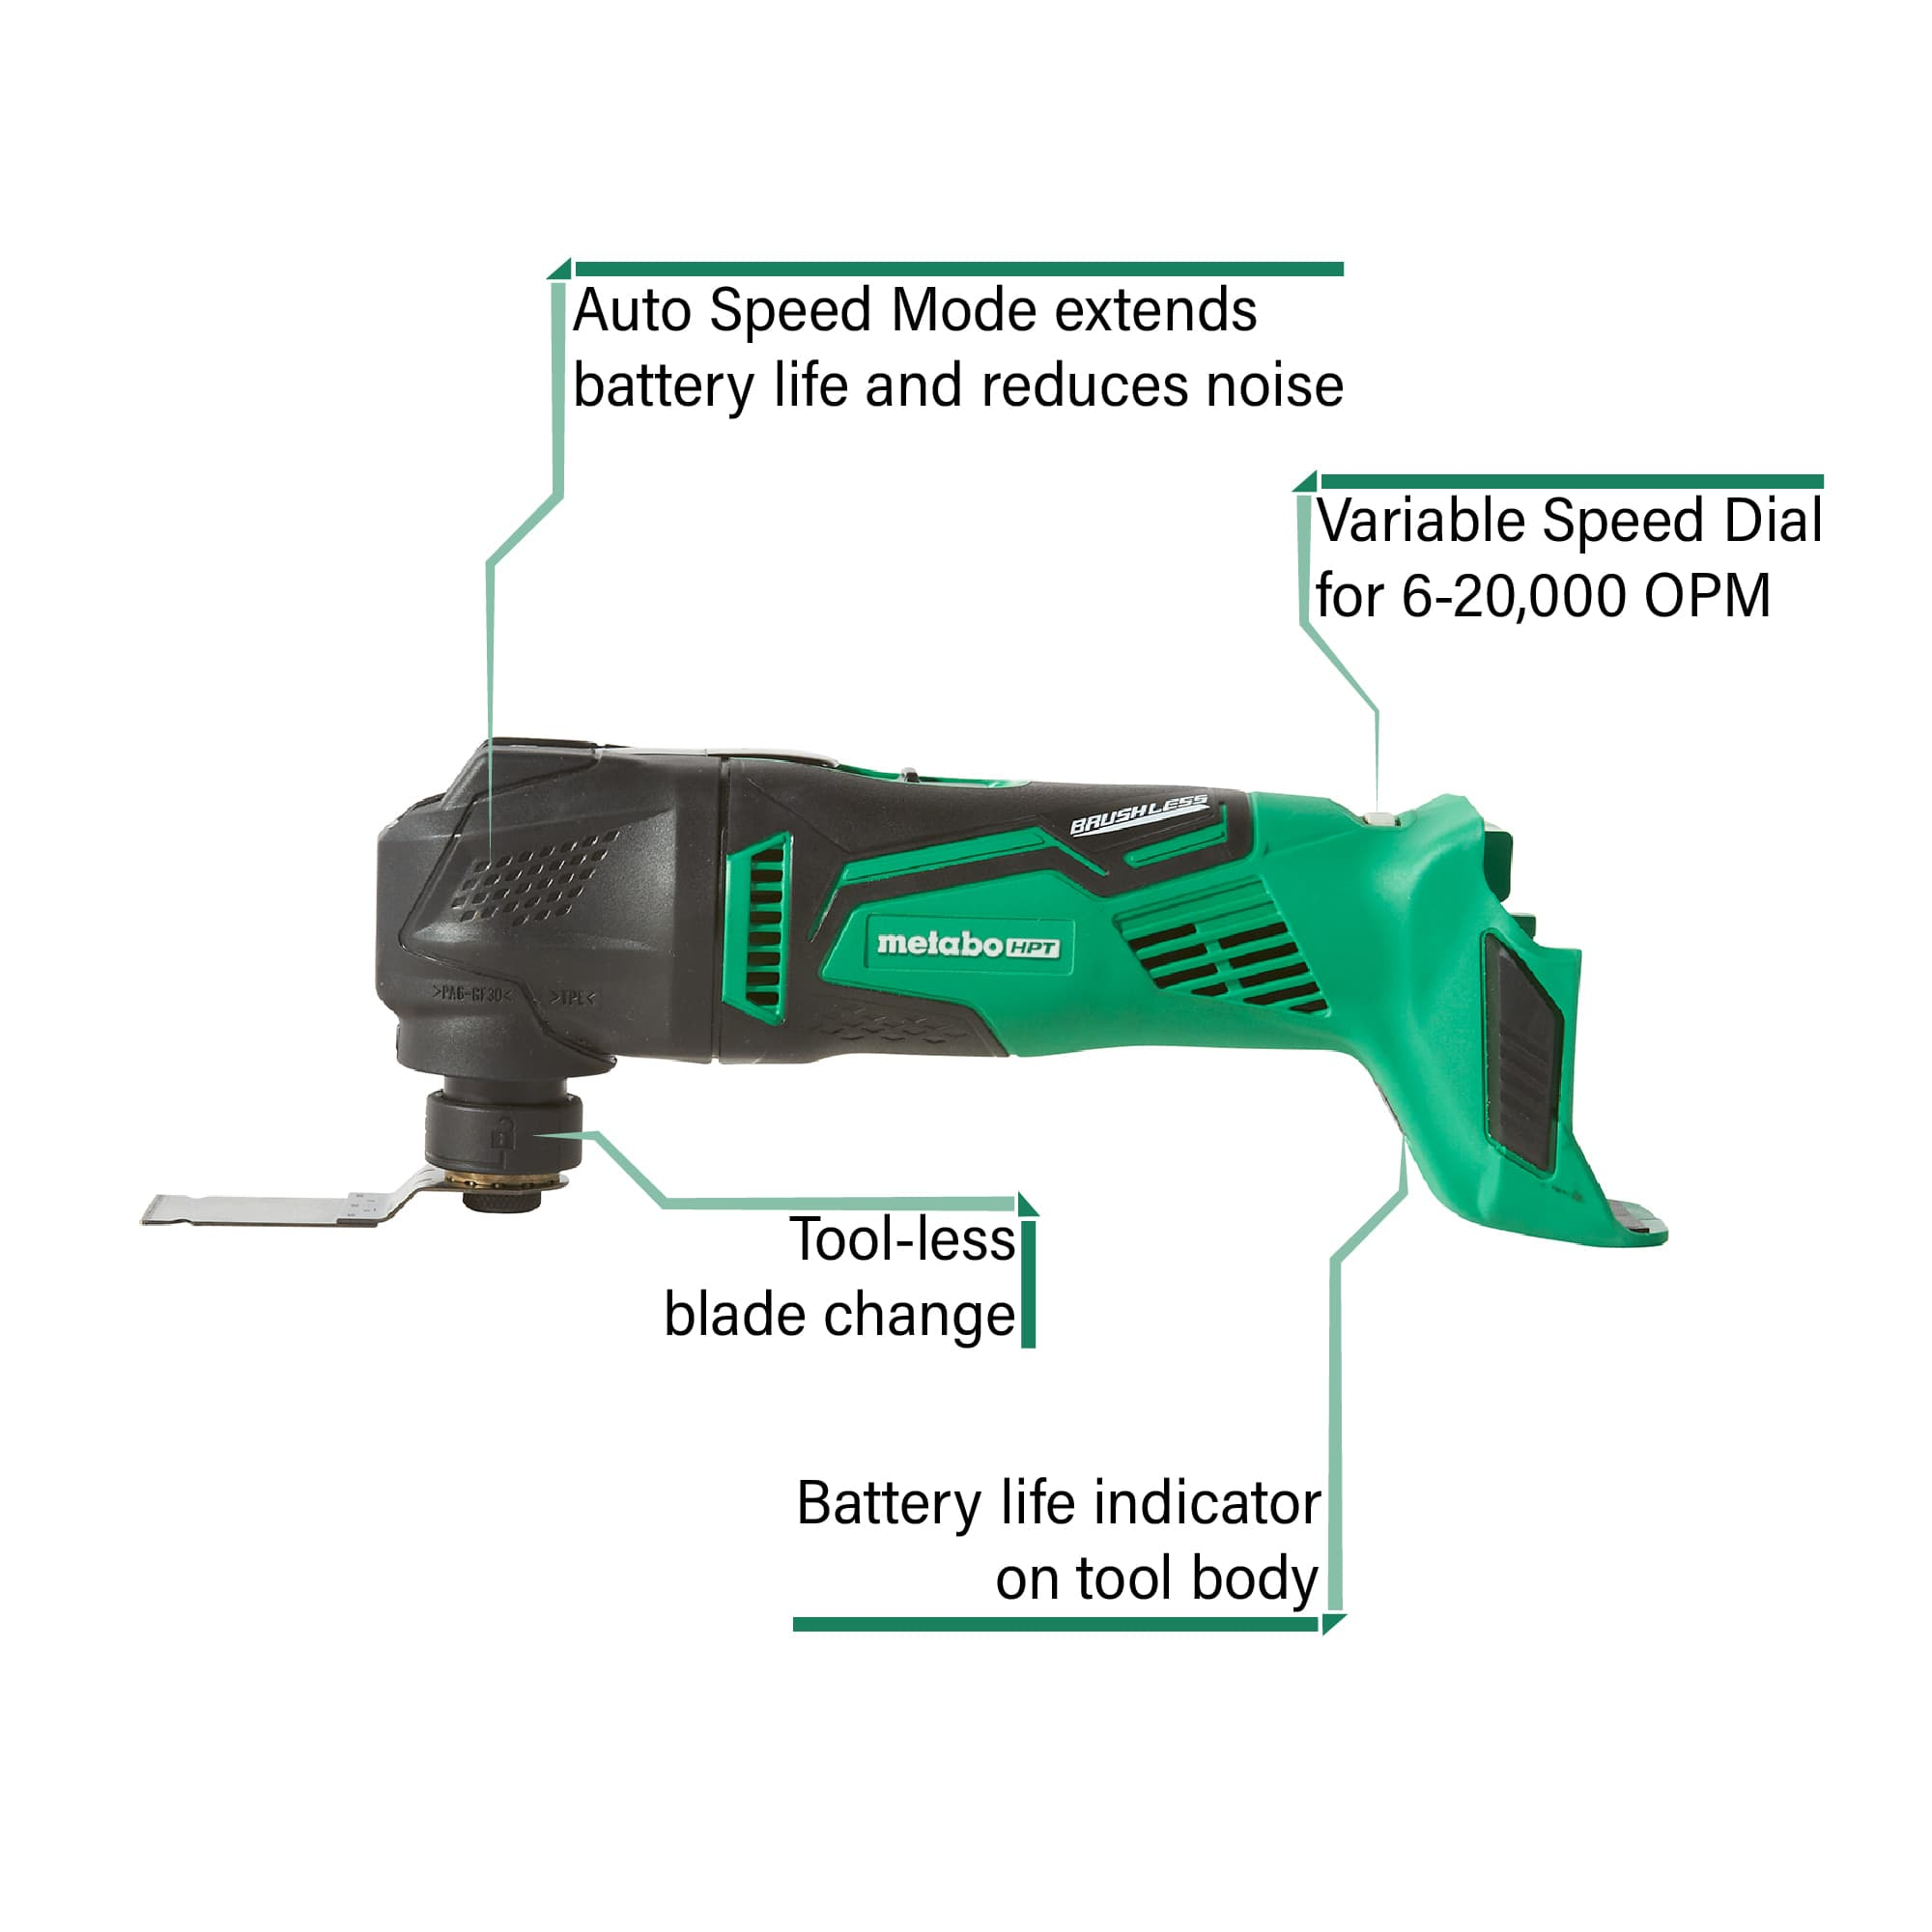 Cordless oscillating tool with callouts